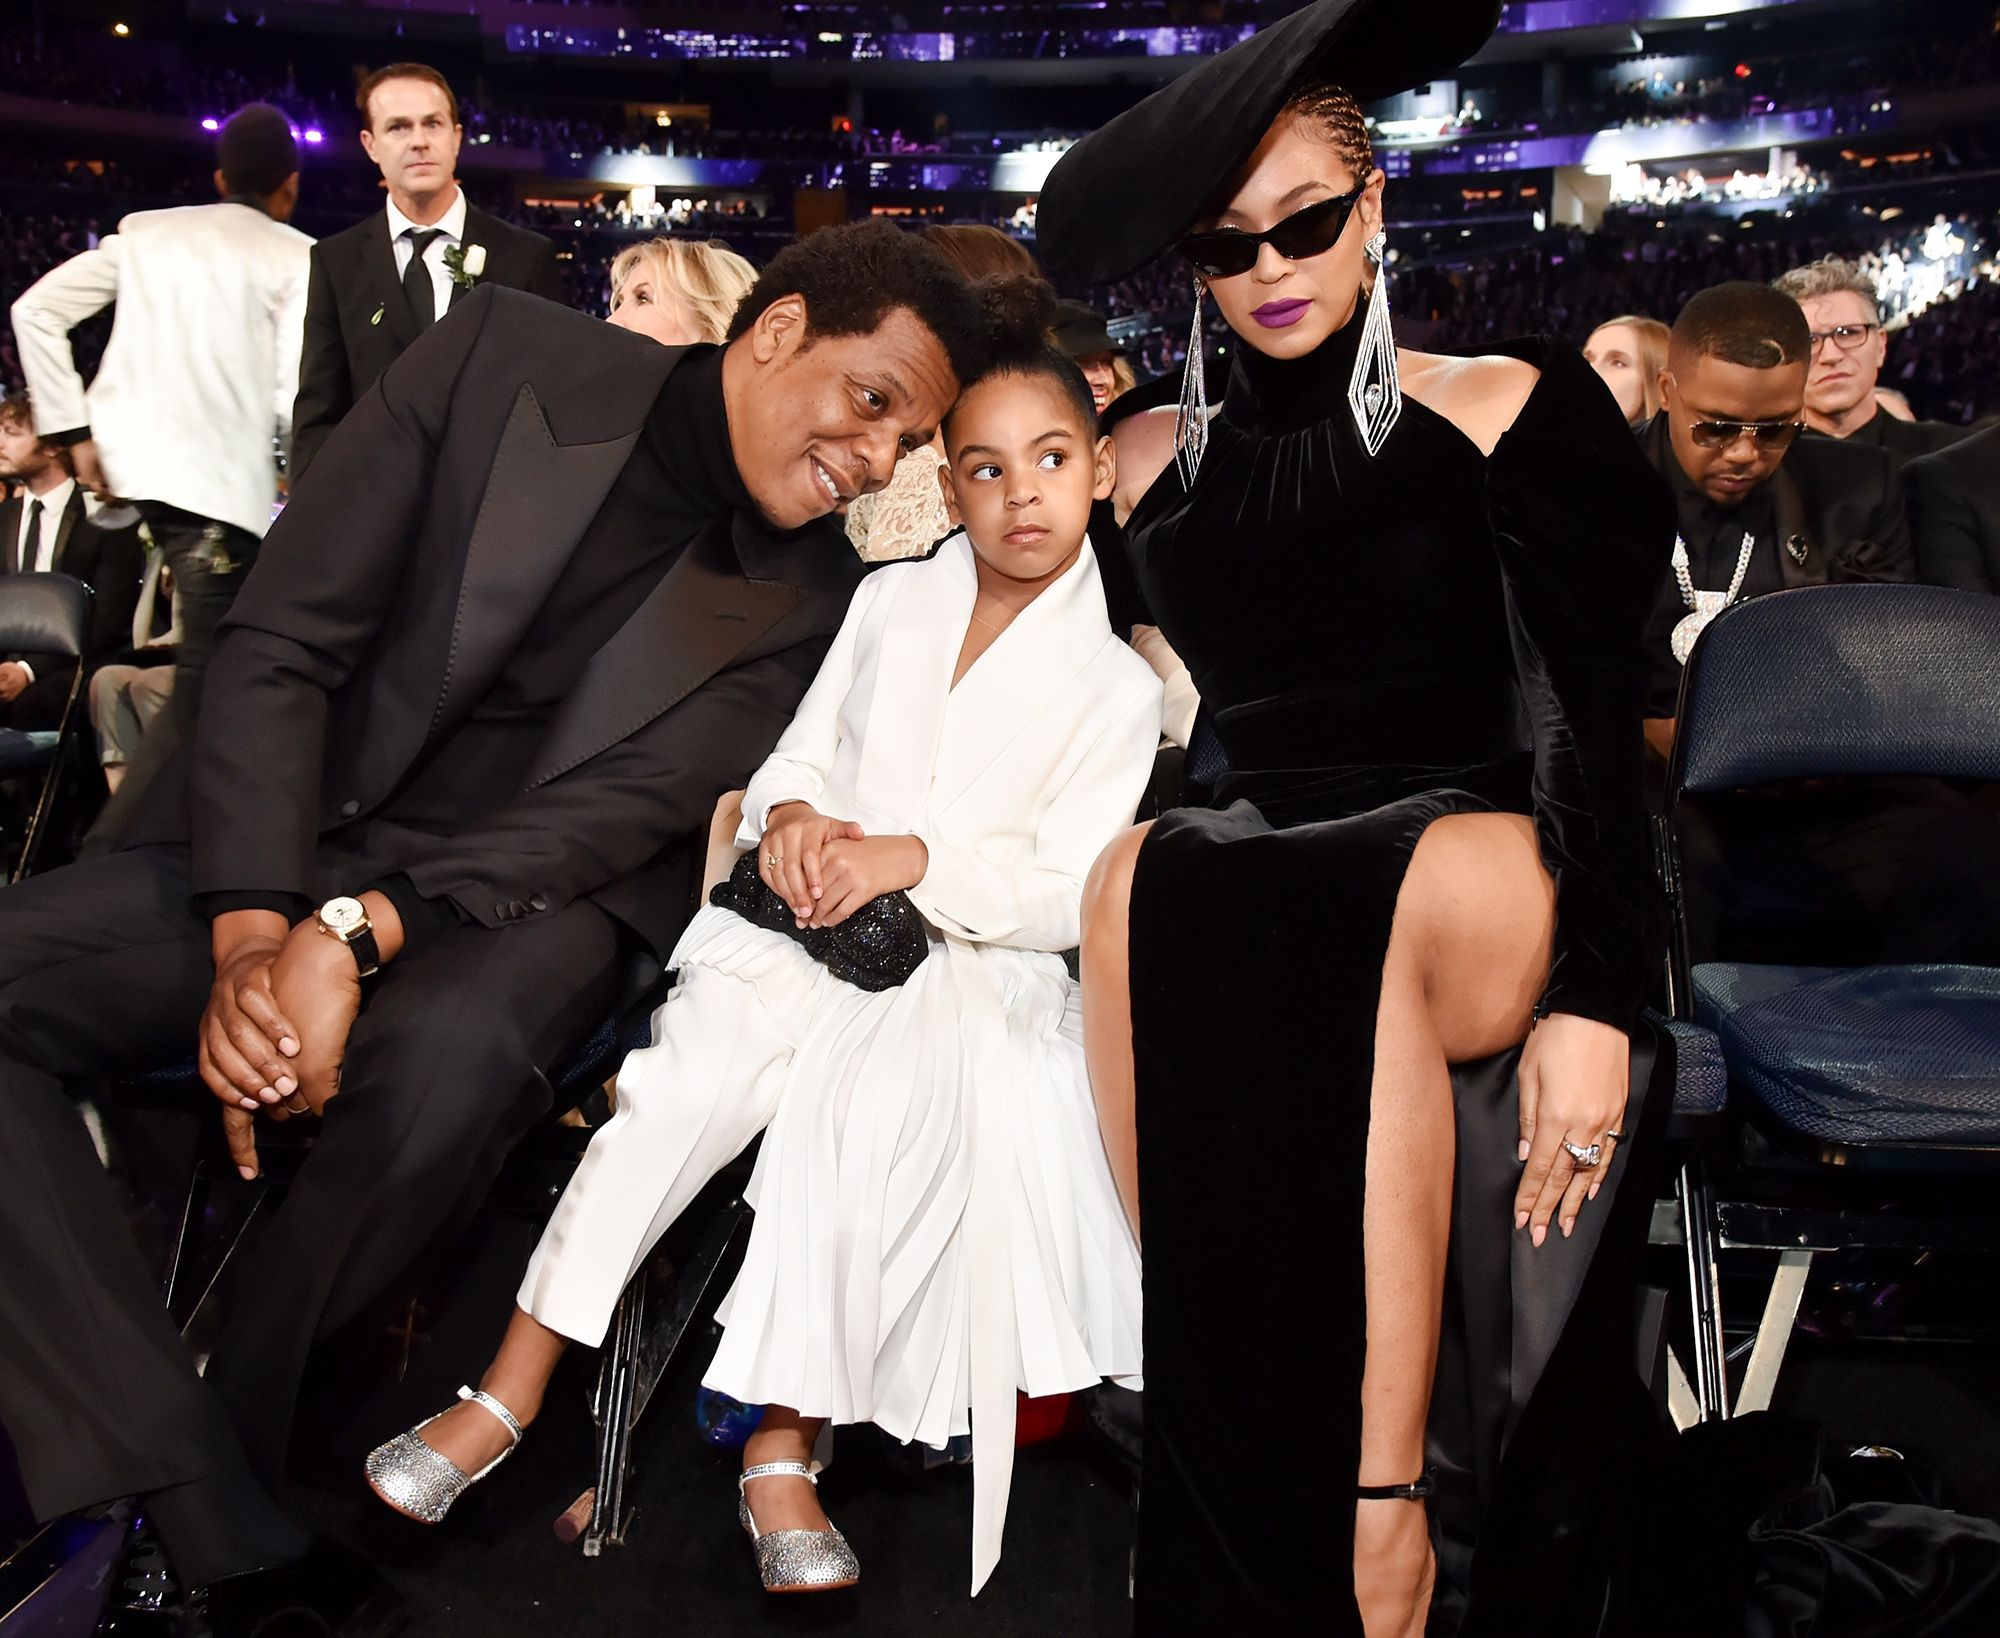 Family Night Beyonce And Daughter Blue Support 8 Time Nominee Jay Z At Grammy Awards Blue Ivy Carter Blue Ivy Beyonce And Jay Z